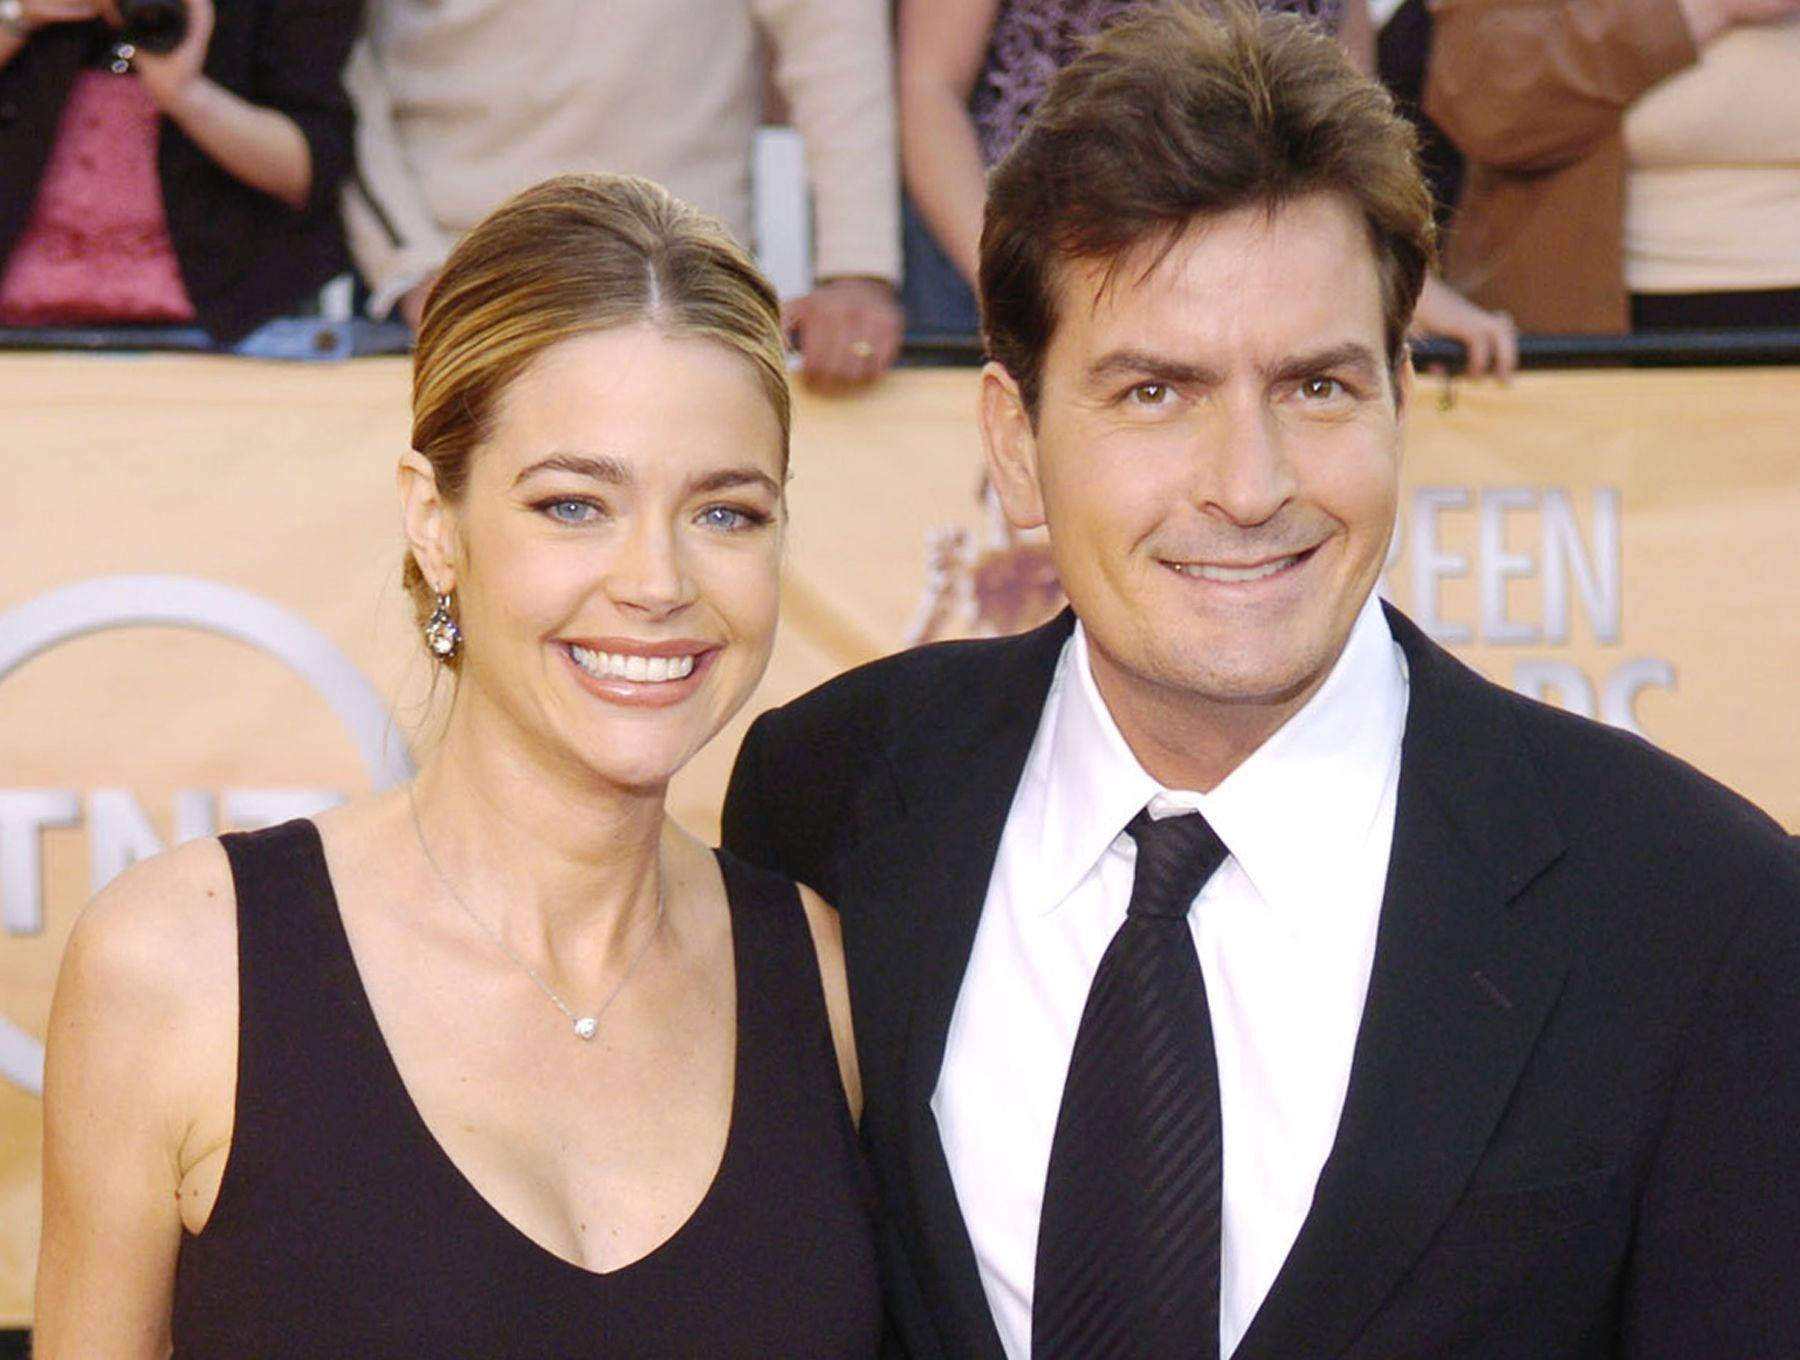 Denise Richards' high-profile marriage to Charlie Sheen ended in divorce and a bitter custody battle over their two daughters.